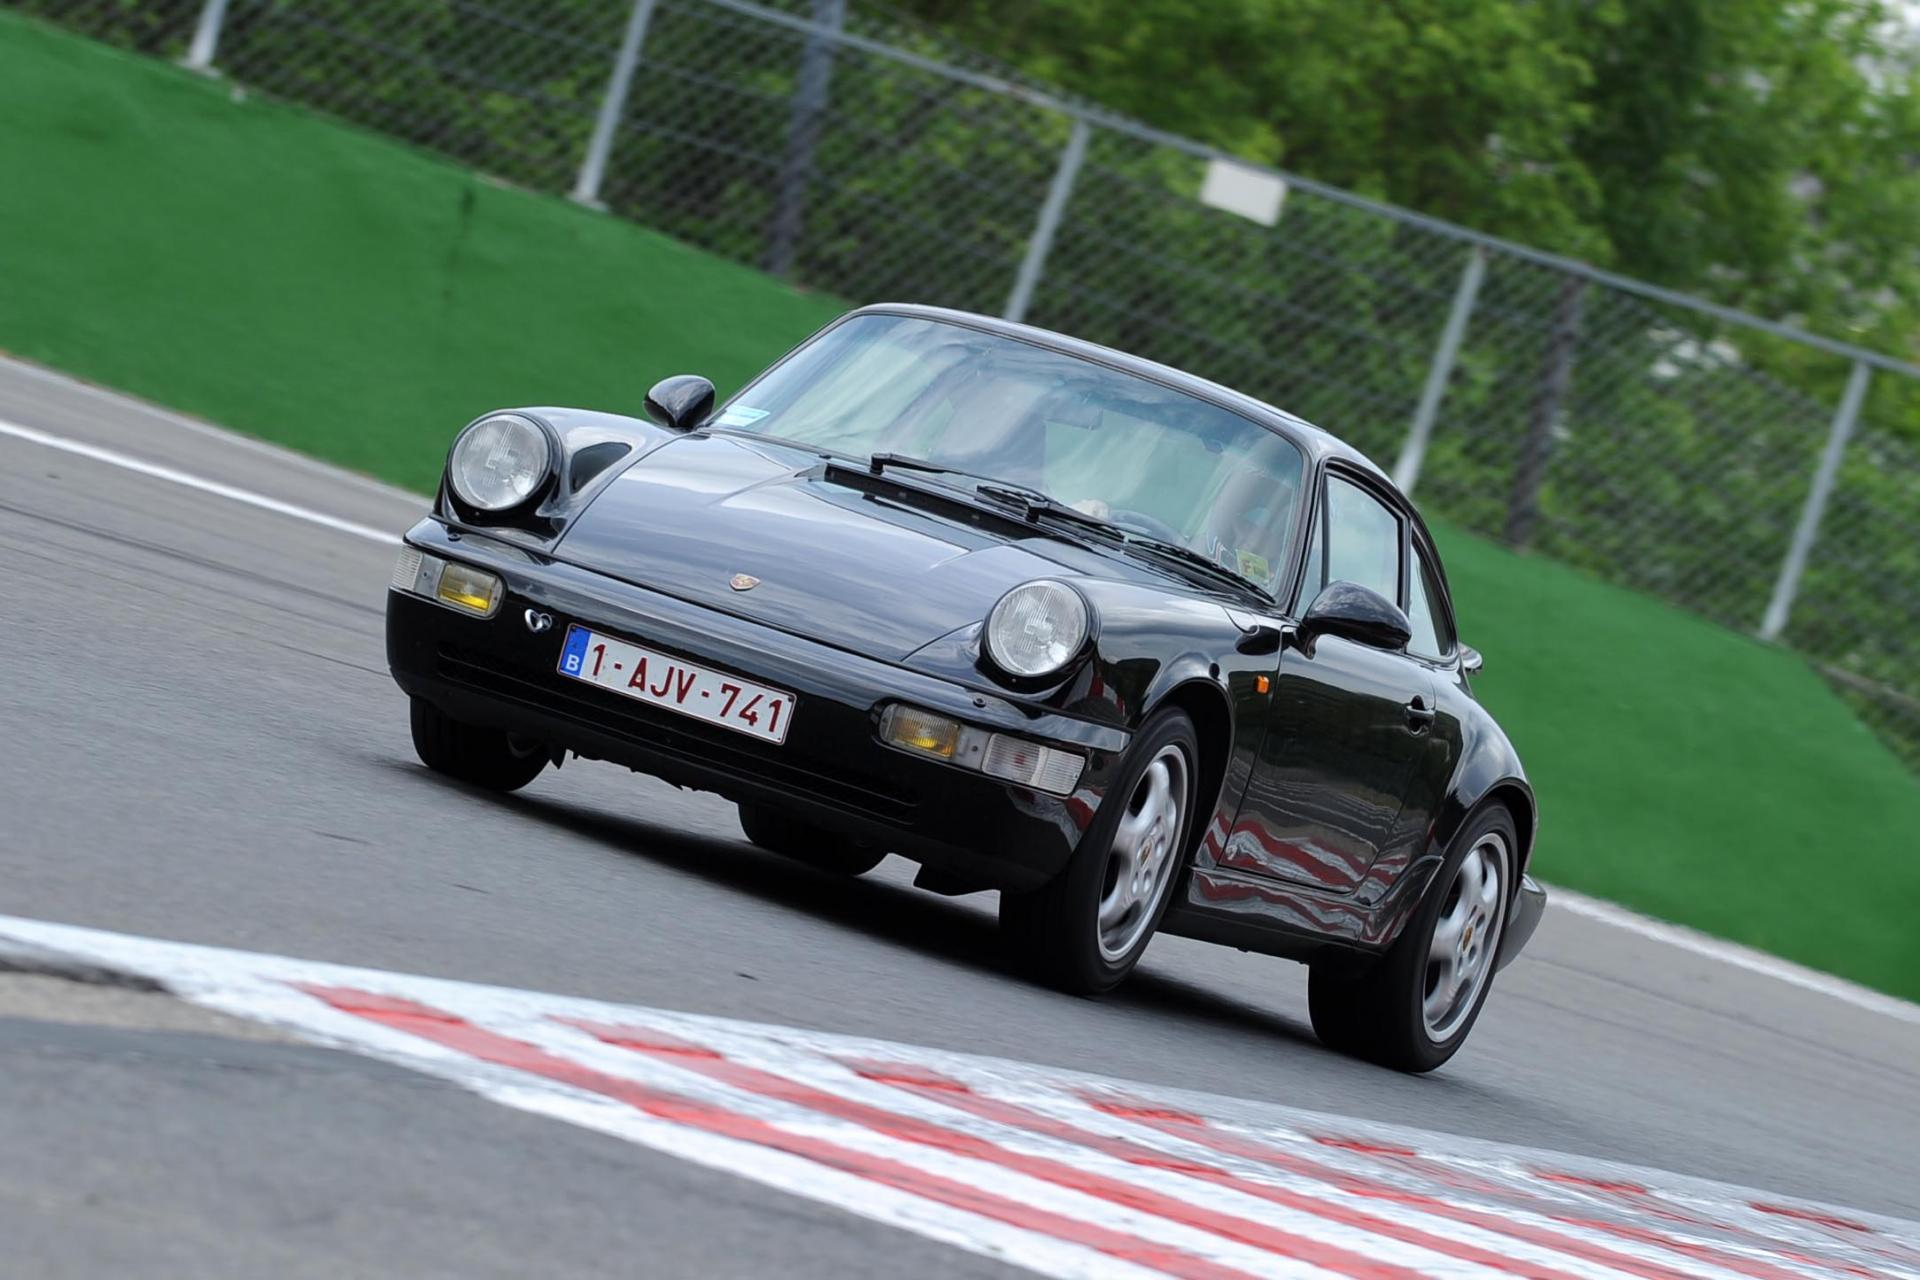 911 youngtimer - Porsche 964 - Production